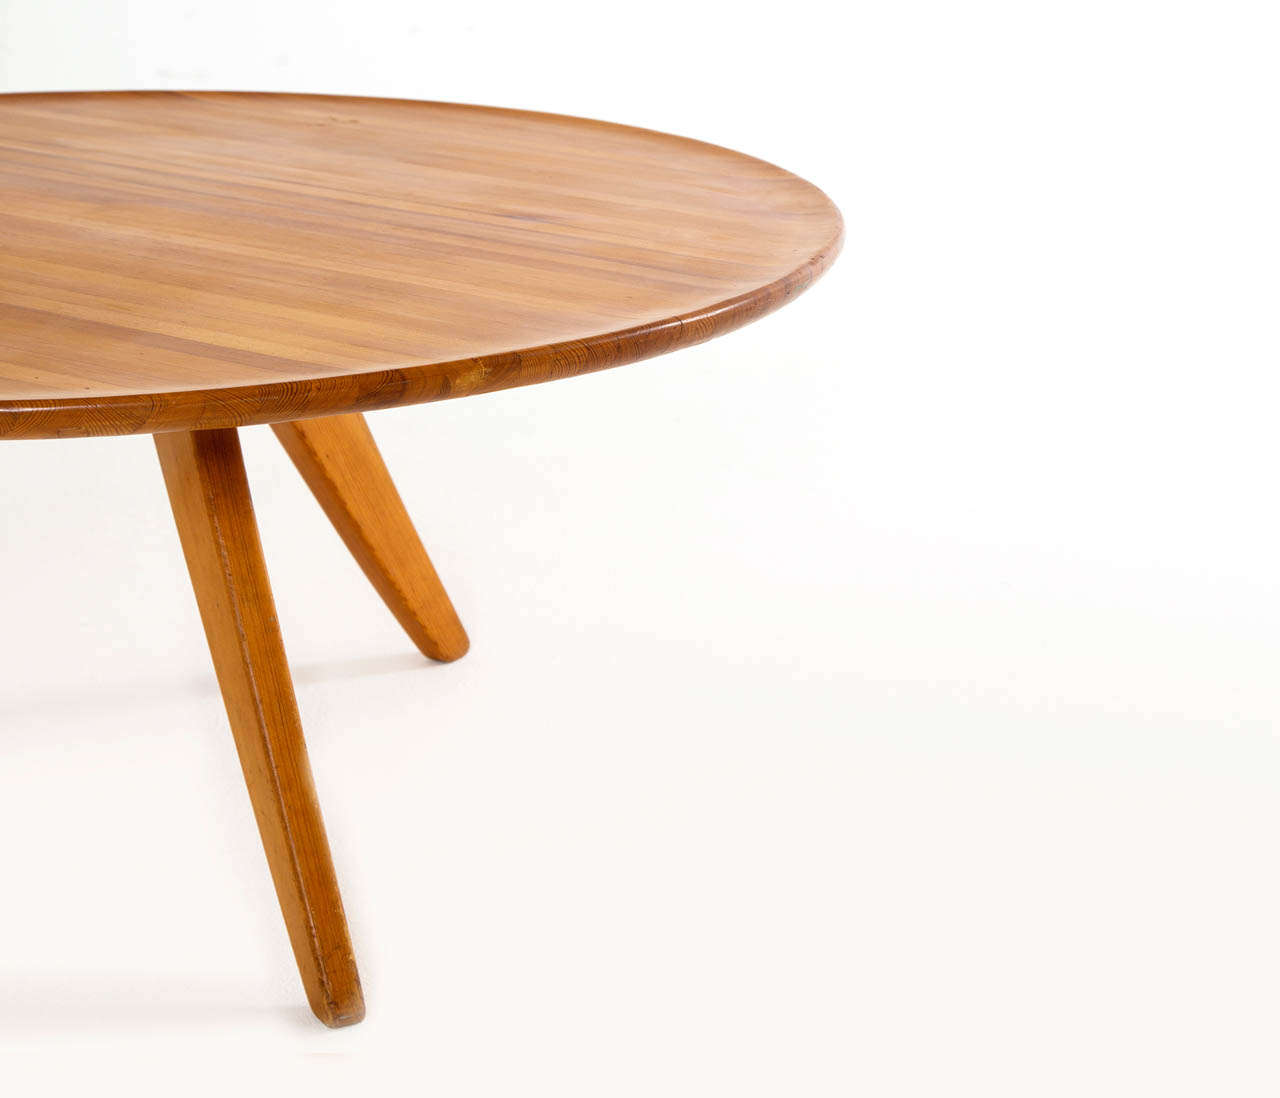 Solid Pine Wood Cocktail Table By Carl Malmsten For Svensk Fur At 1stdibs